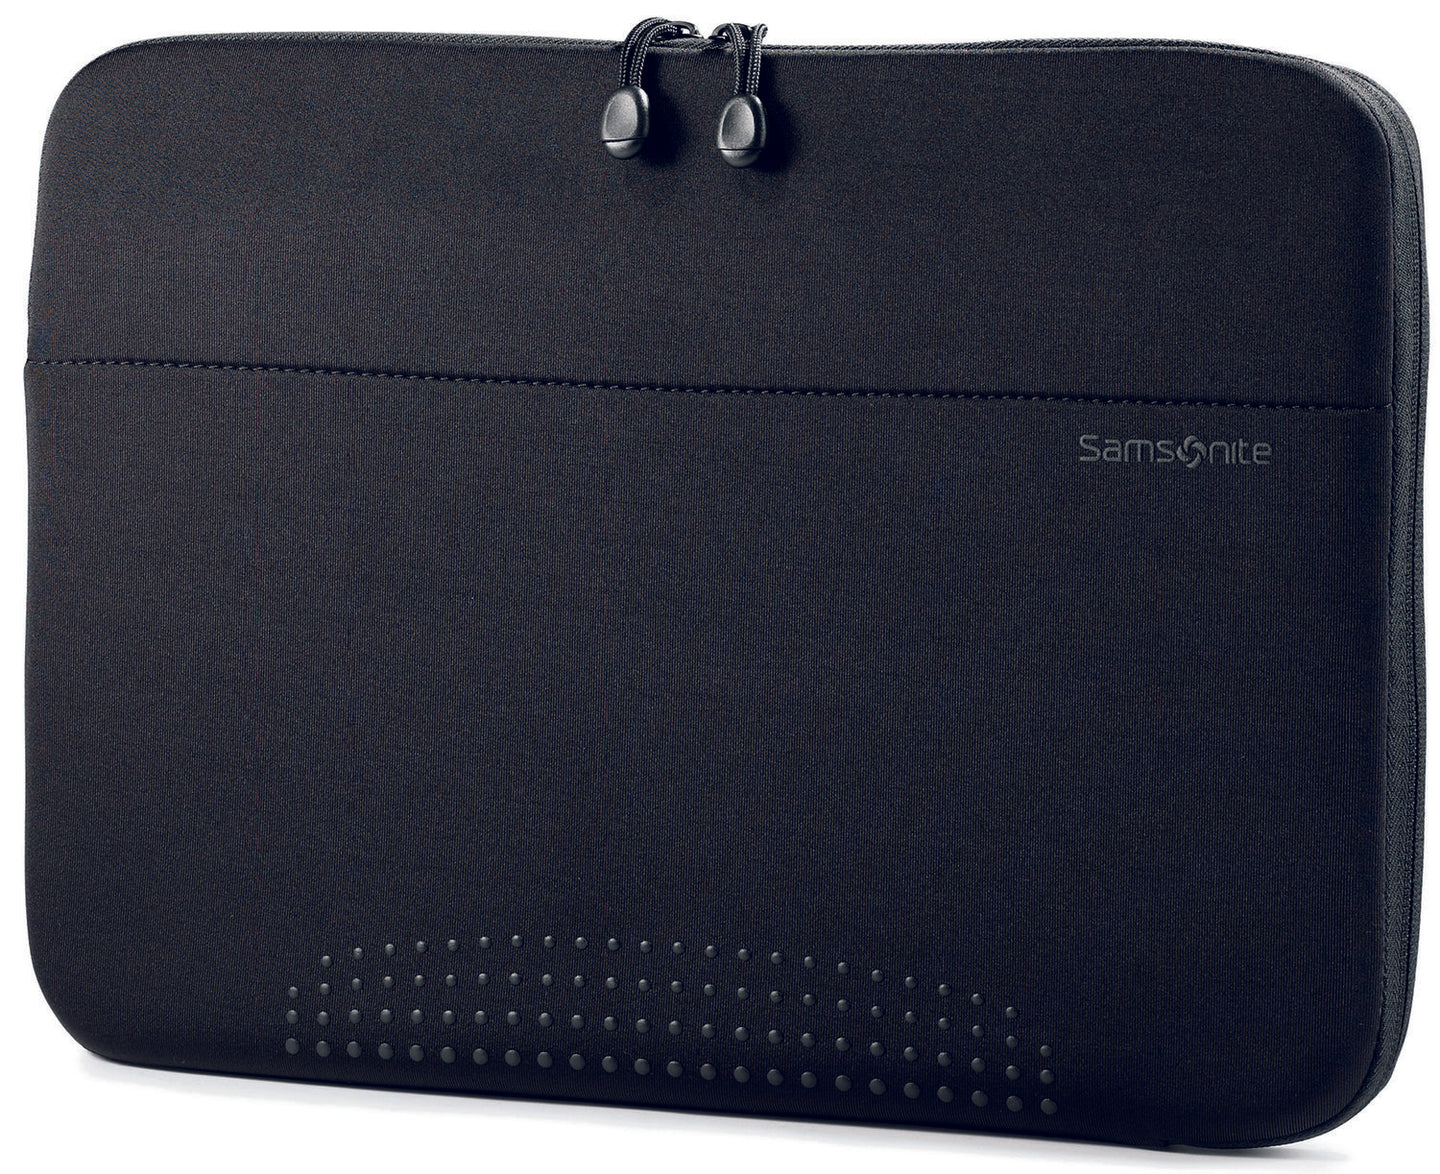 Samsonite - Aramon NXT 15.6 Laptop Sleeve